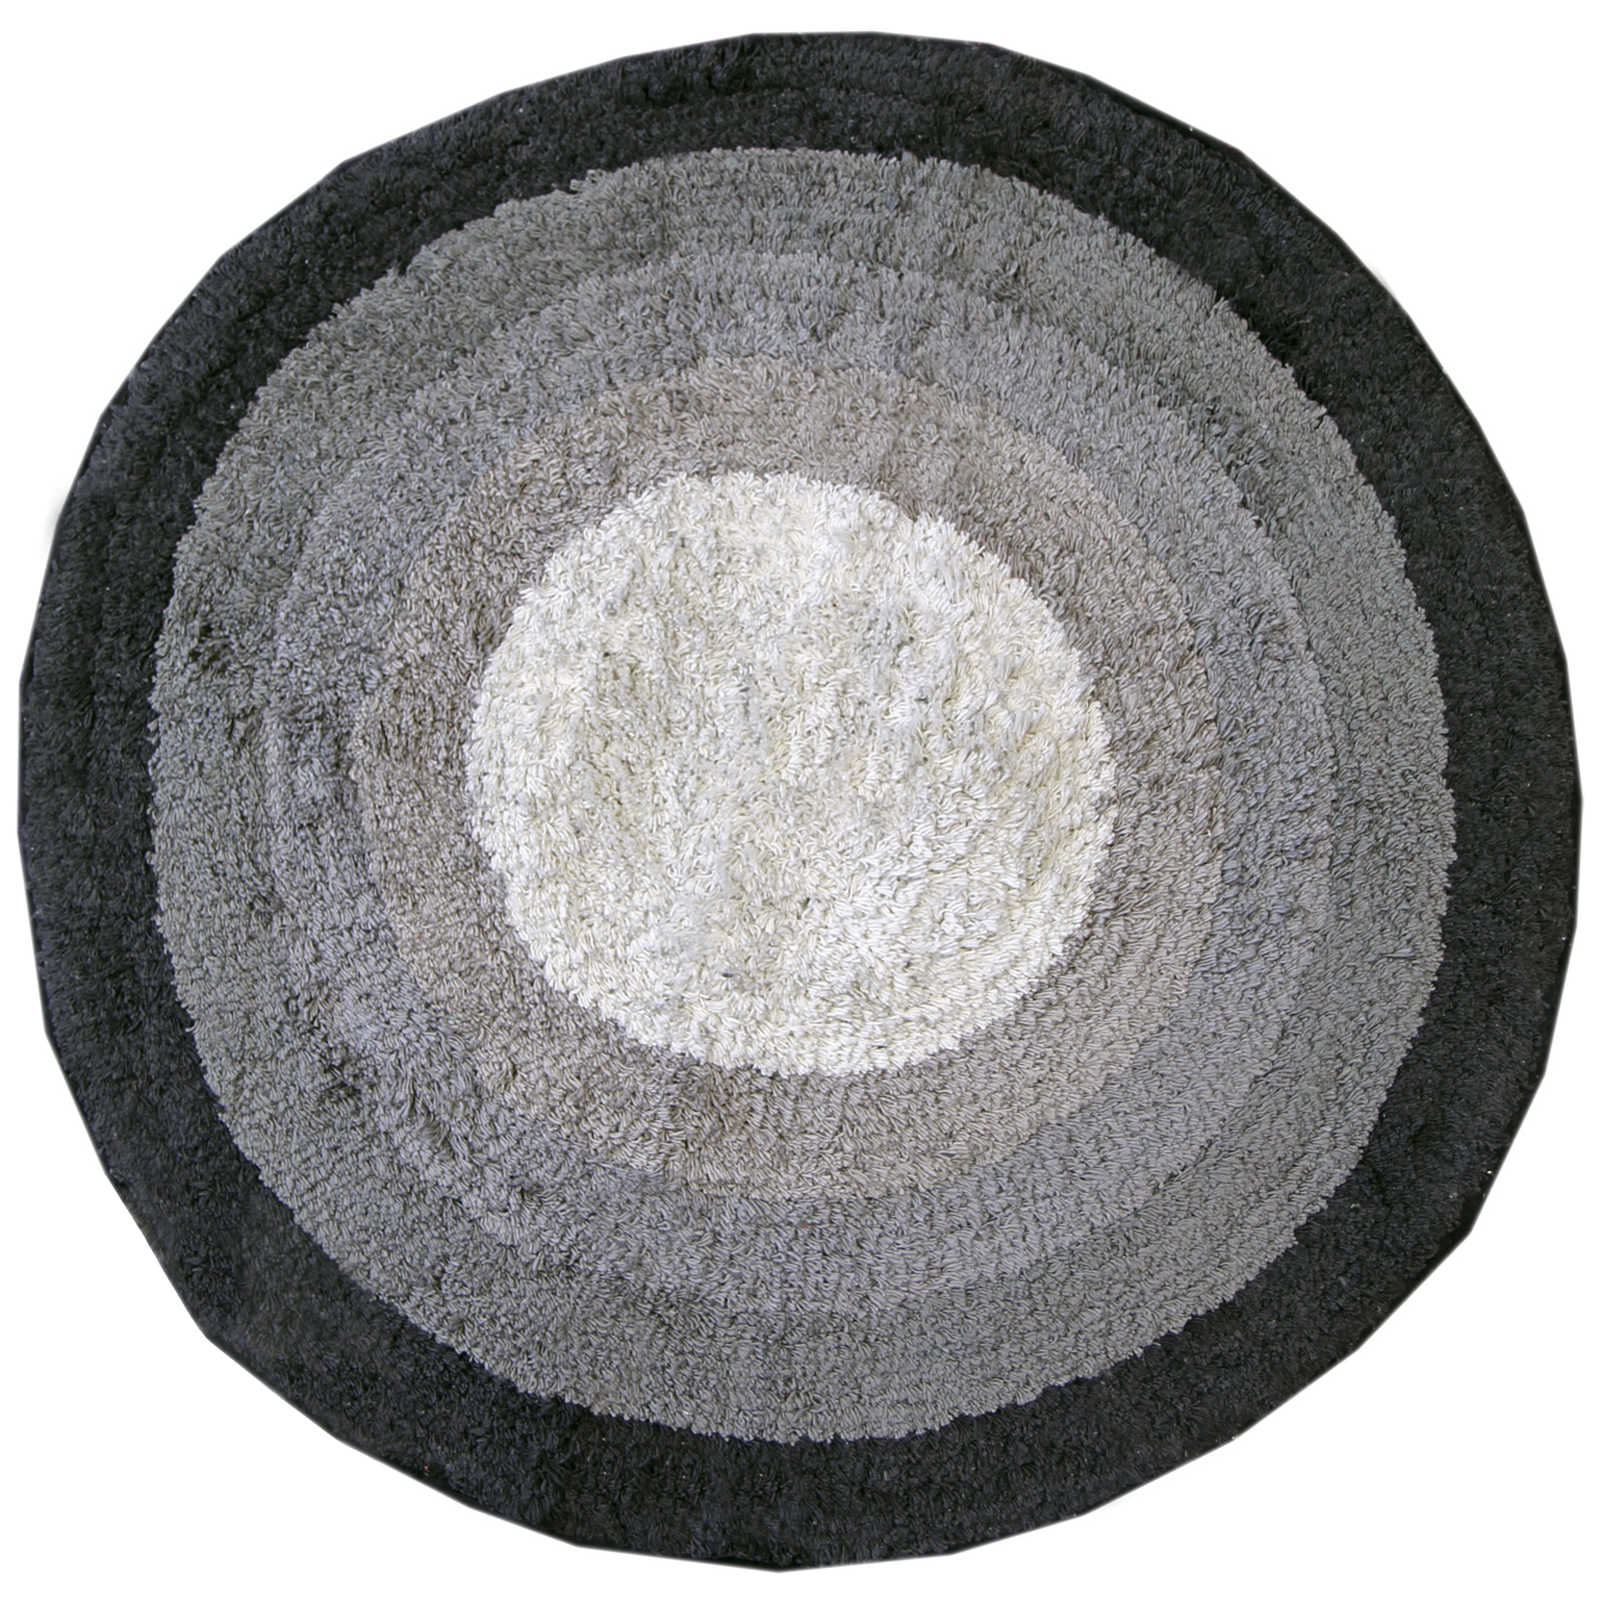 White Bath Mat Round Rug Shag Non Slip Ultra Plush Microfiber Highly Water Absorbent Durable and Washable for Bathroom 4 Feet Round. by Masada Rugs. Sherry Kline Tufted Petals Black 32